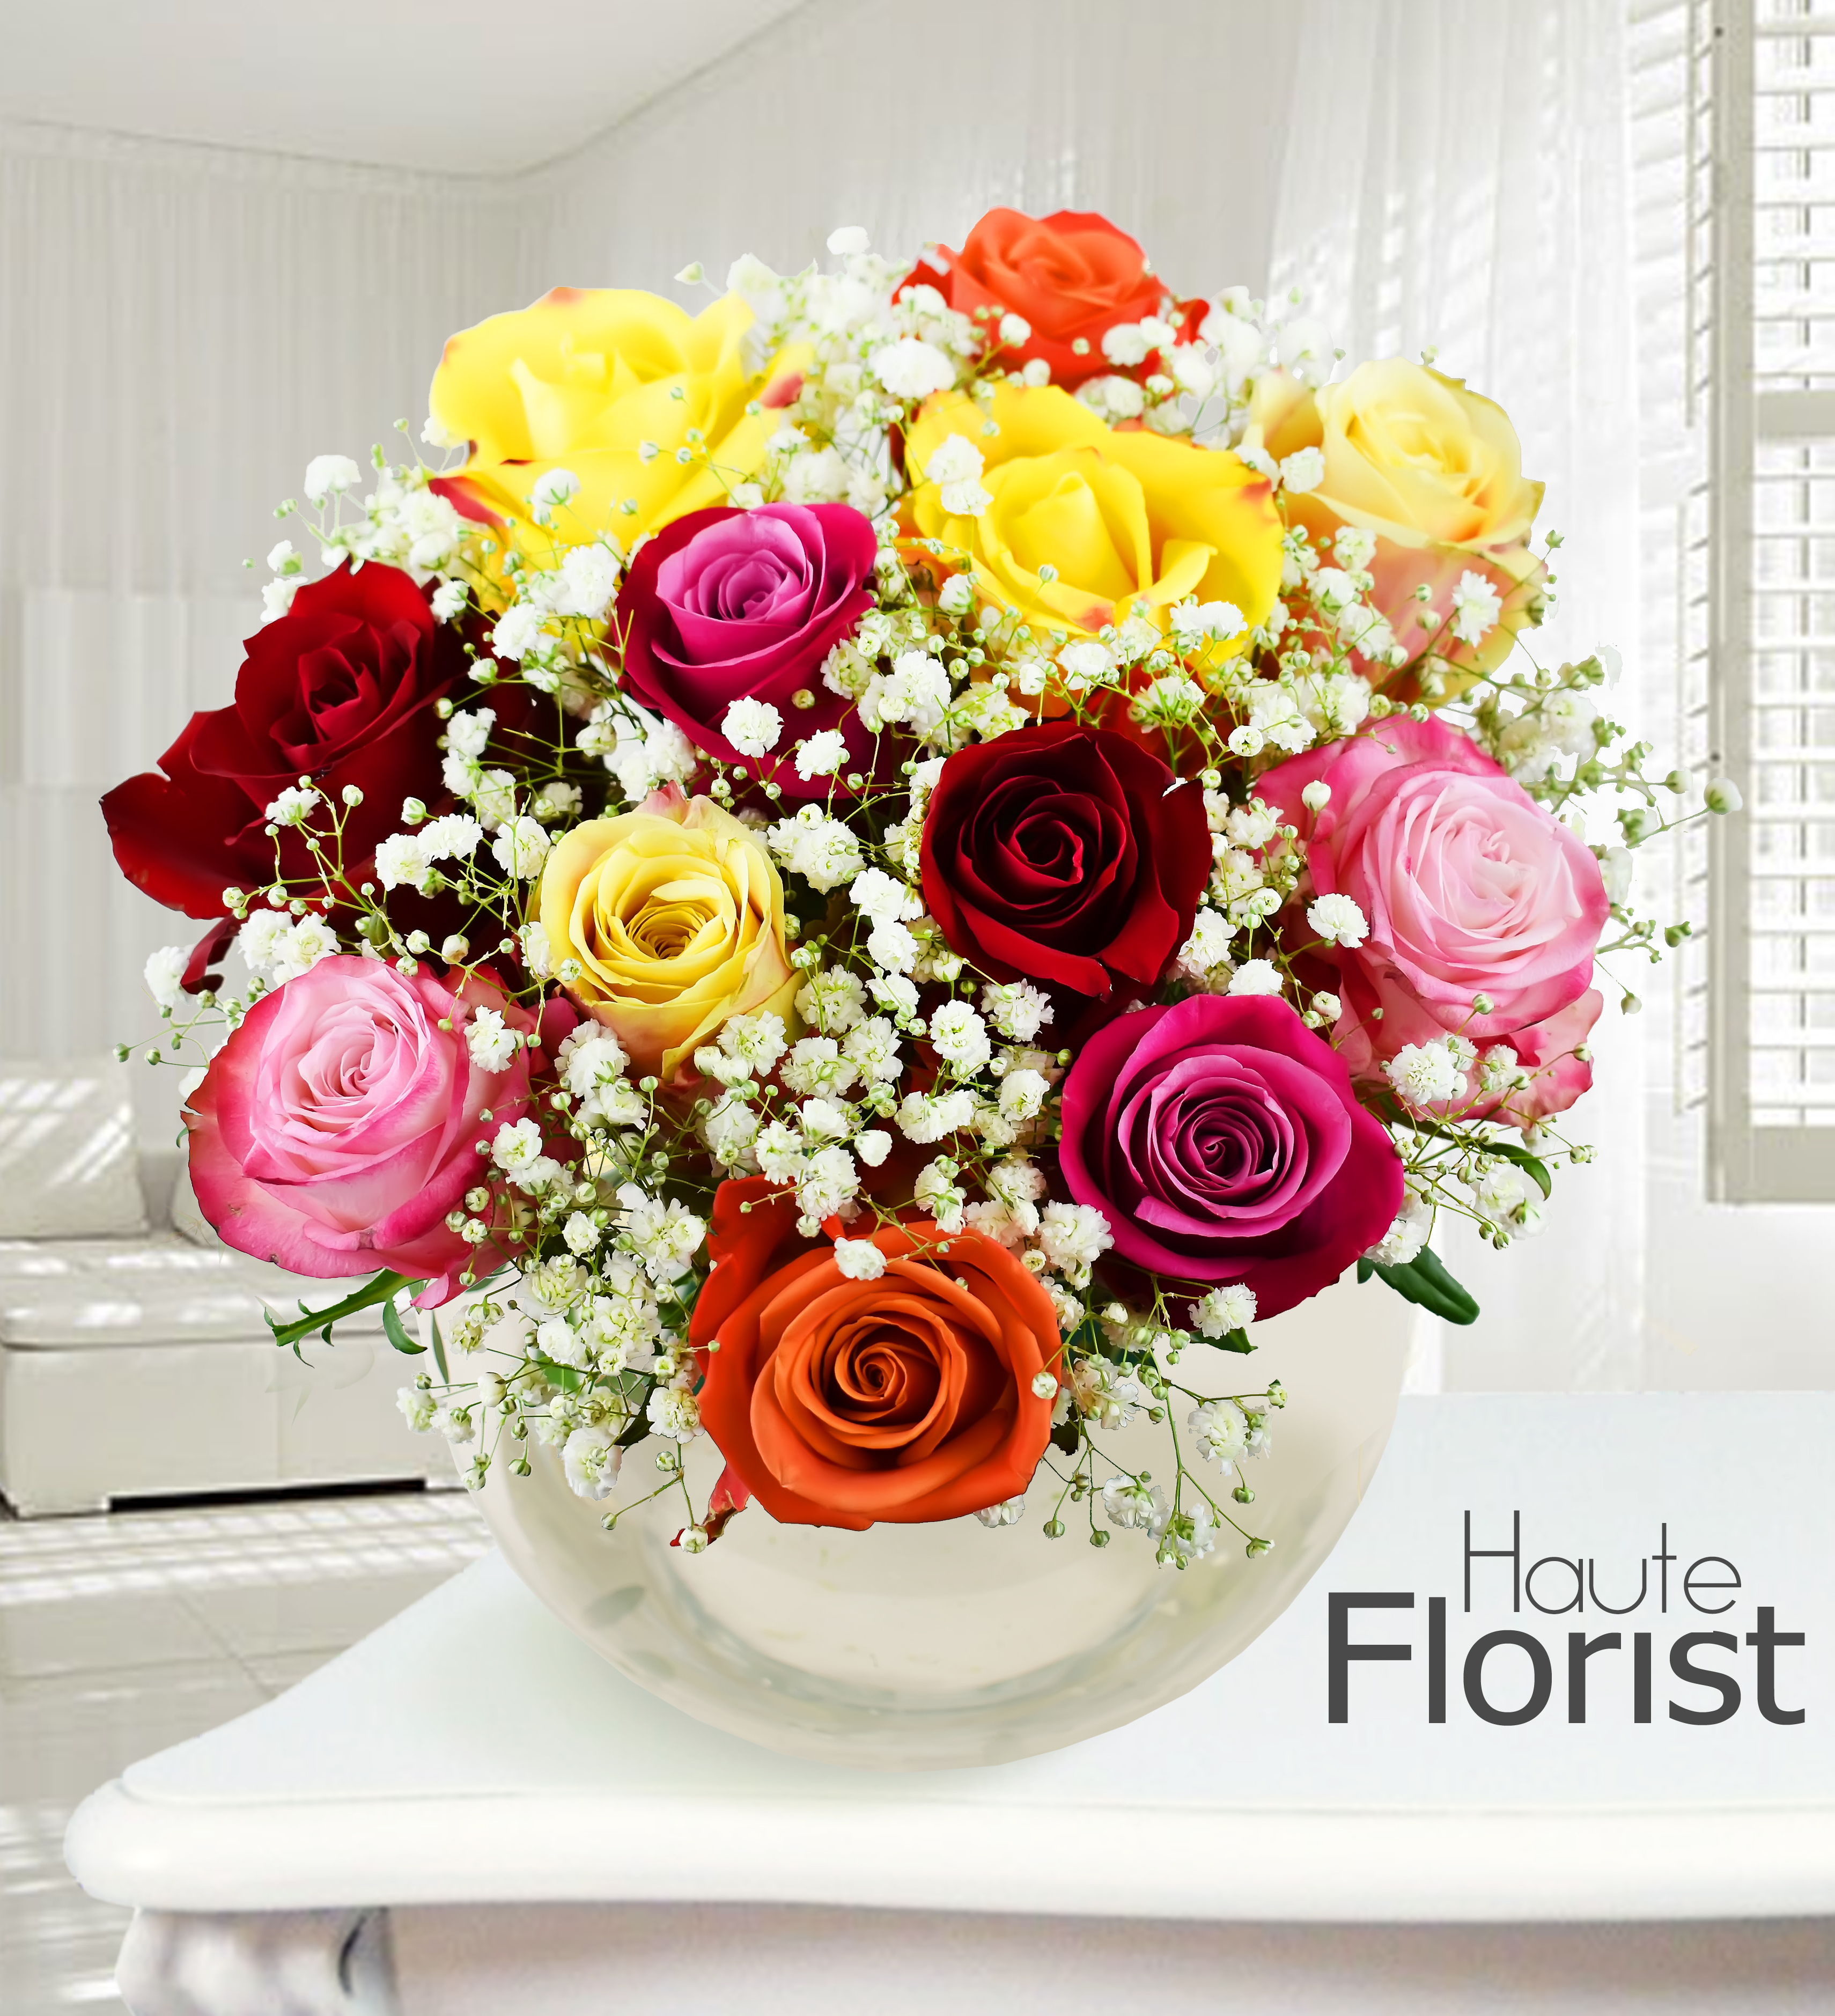 Engagement flowers for the happy couple